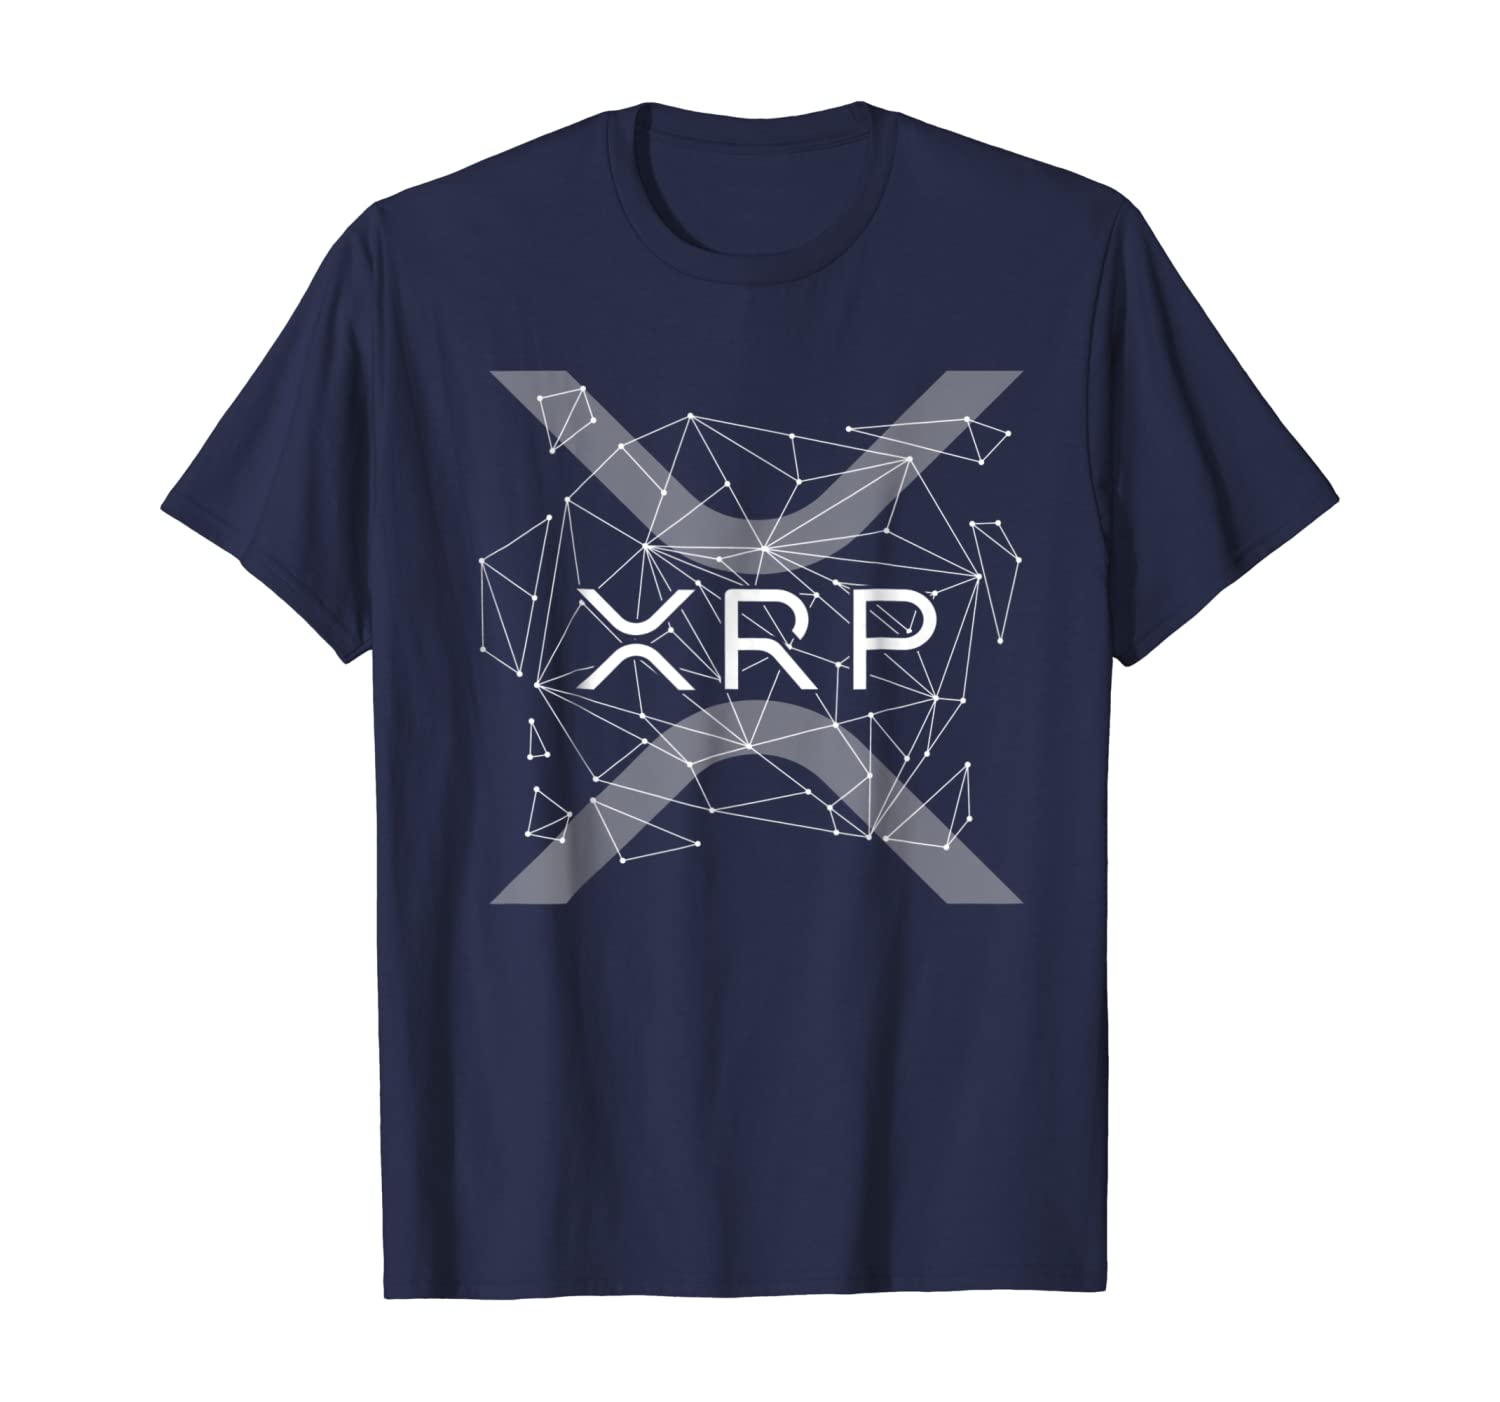 amazon com ripple xrp logo new ripple logo cryptocurrency t shirt clothing amazon com ripple xrp logo new ripple